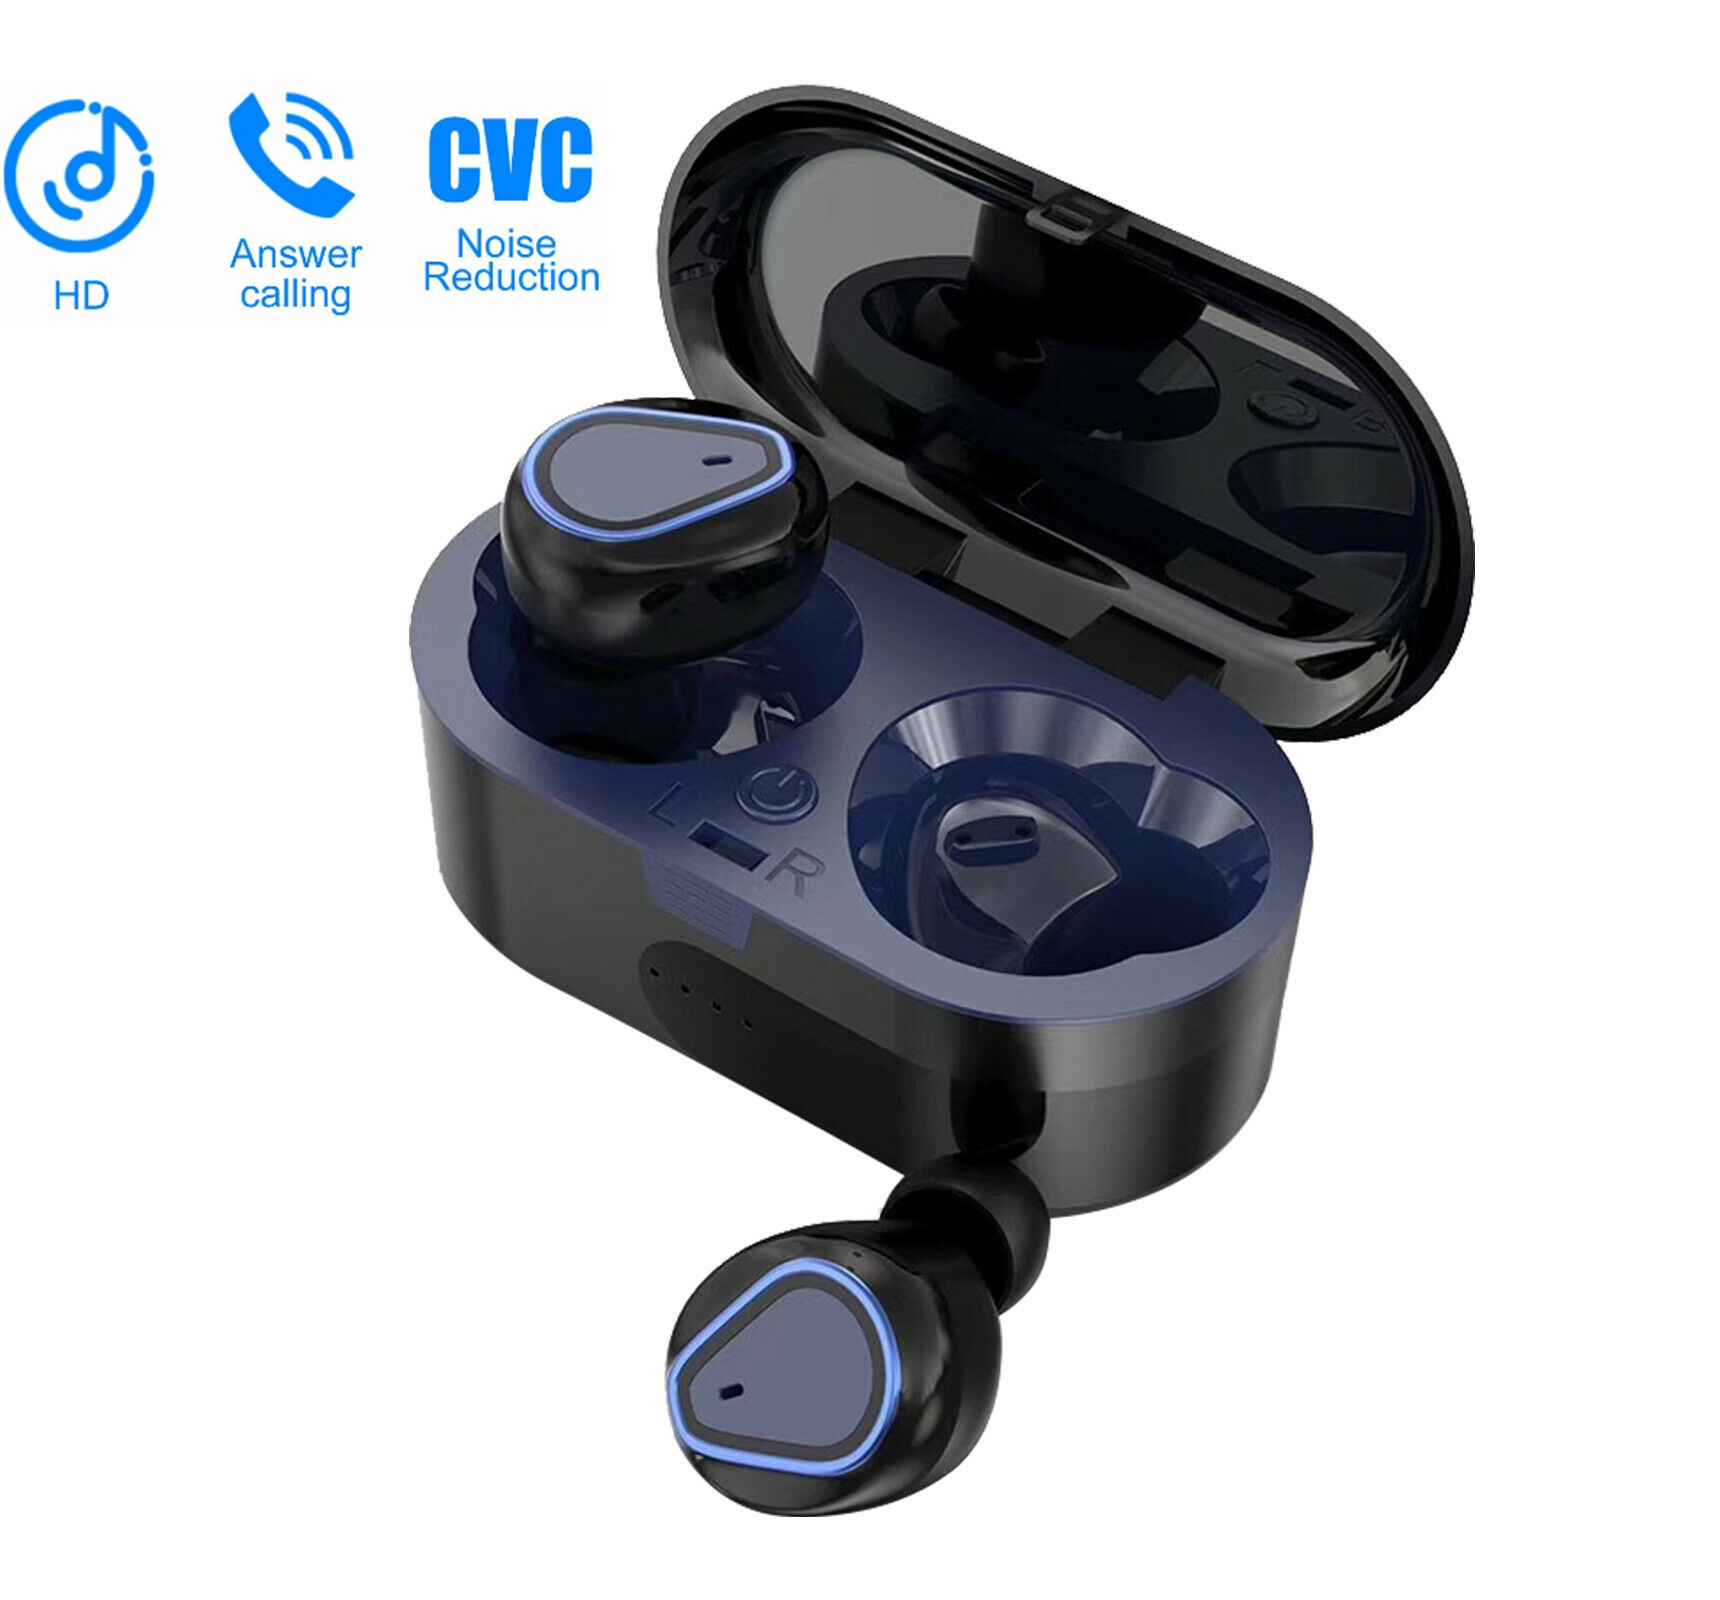 2020 Bluetooth 5 0 Headsets Tws Wireless Headphone Mini Earphones Stereo Earbuds In Ear Headphones With Built In Mic For Iphone Android Walmart Com Walmart Com